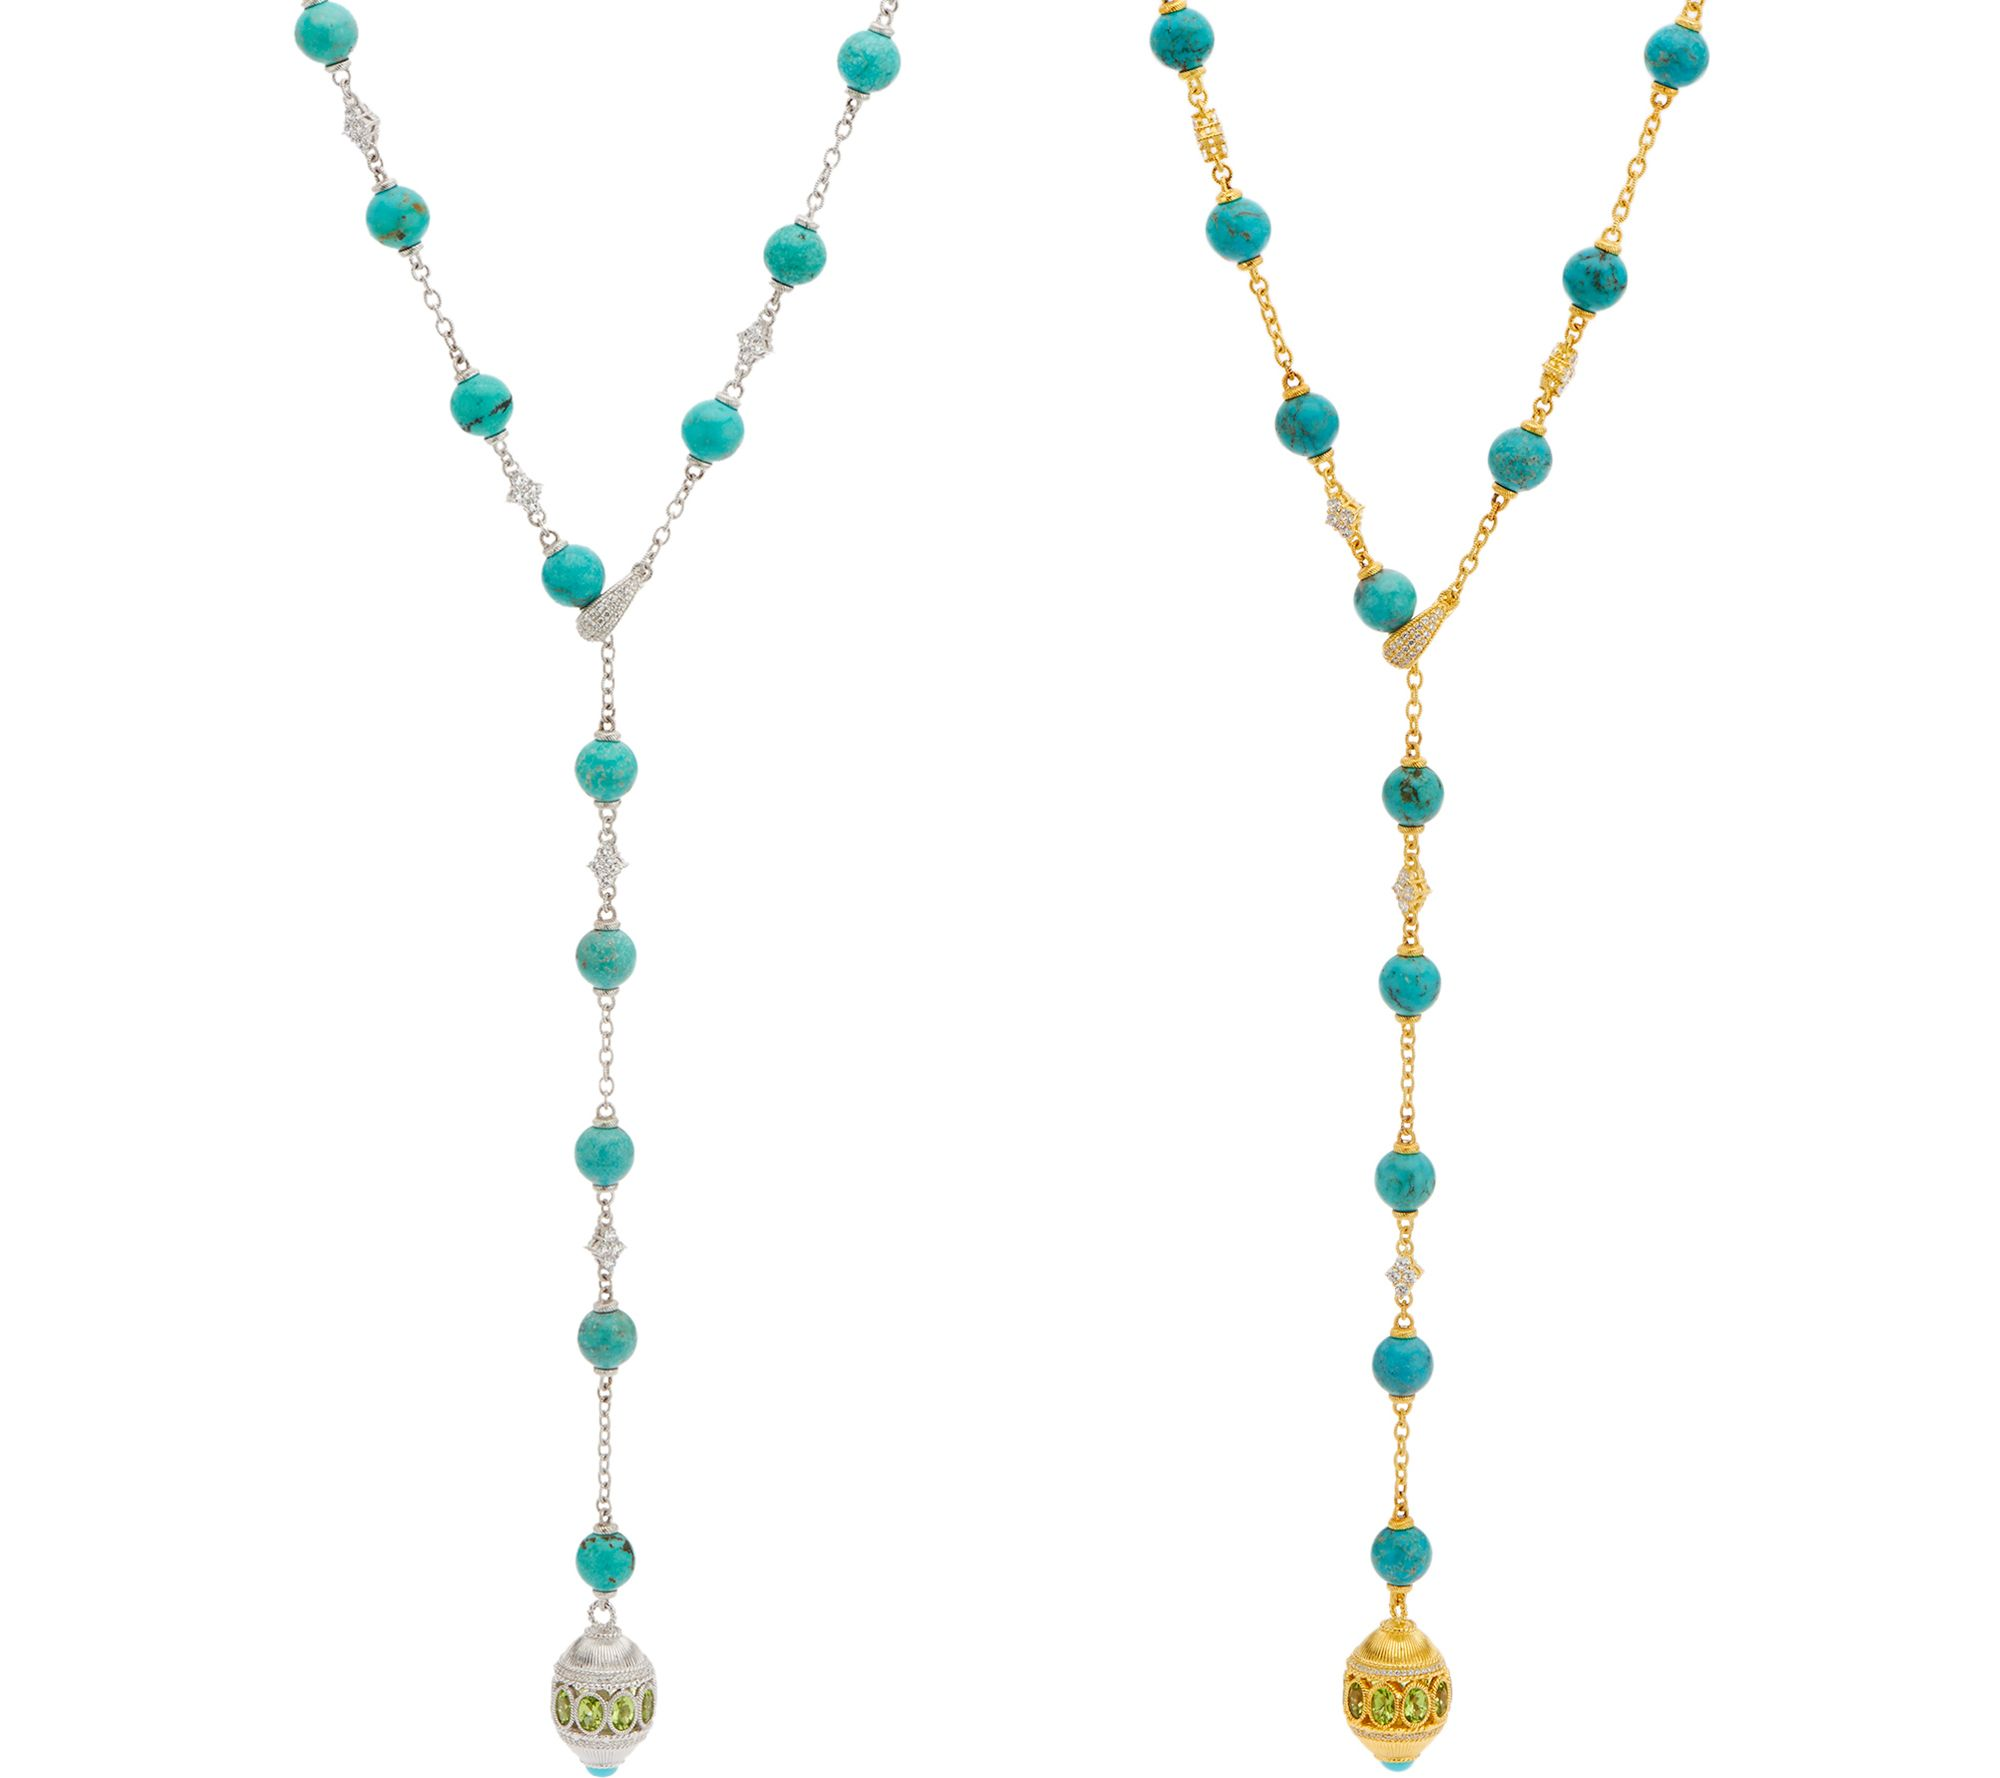 judith ripka sterling silver or 14k clad turquoise bead necklace qvc